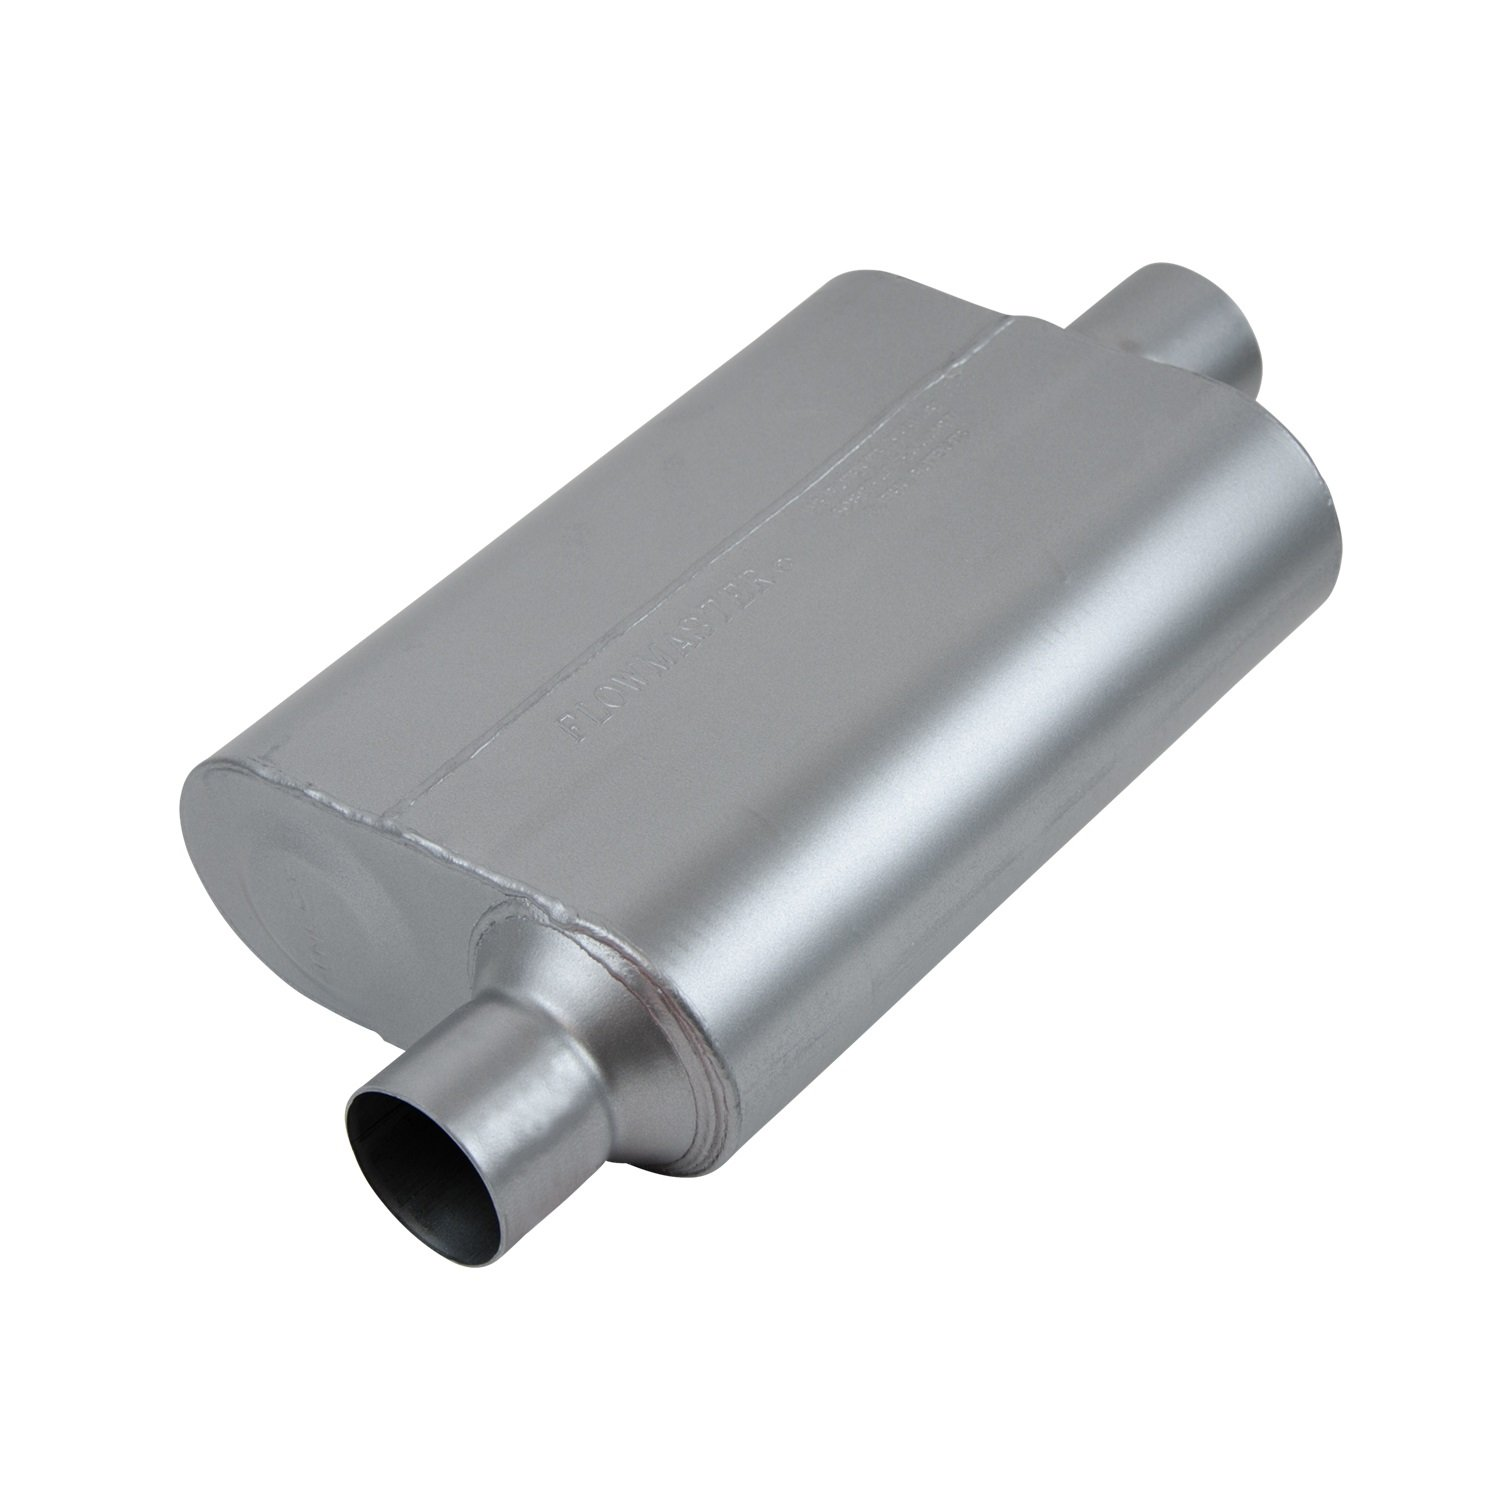 Flowmaster 842546 Super 44 Series Muffler 409S Aggressive Sound 2.50 Offset IN//2.50 Center OUT